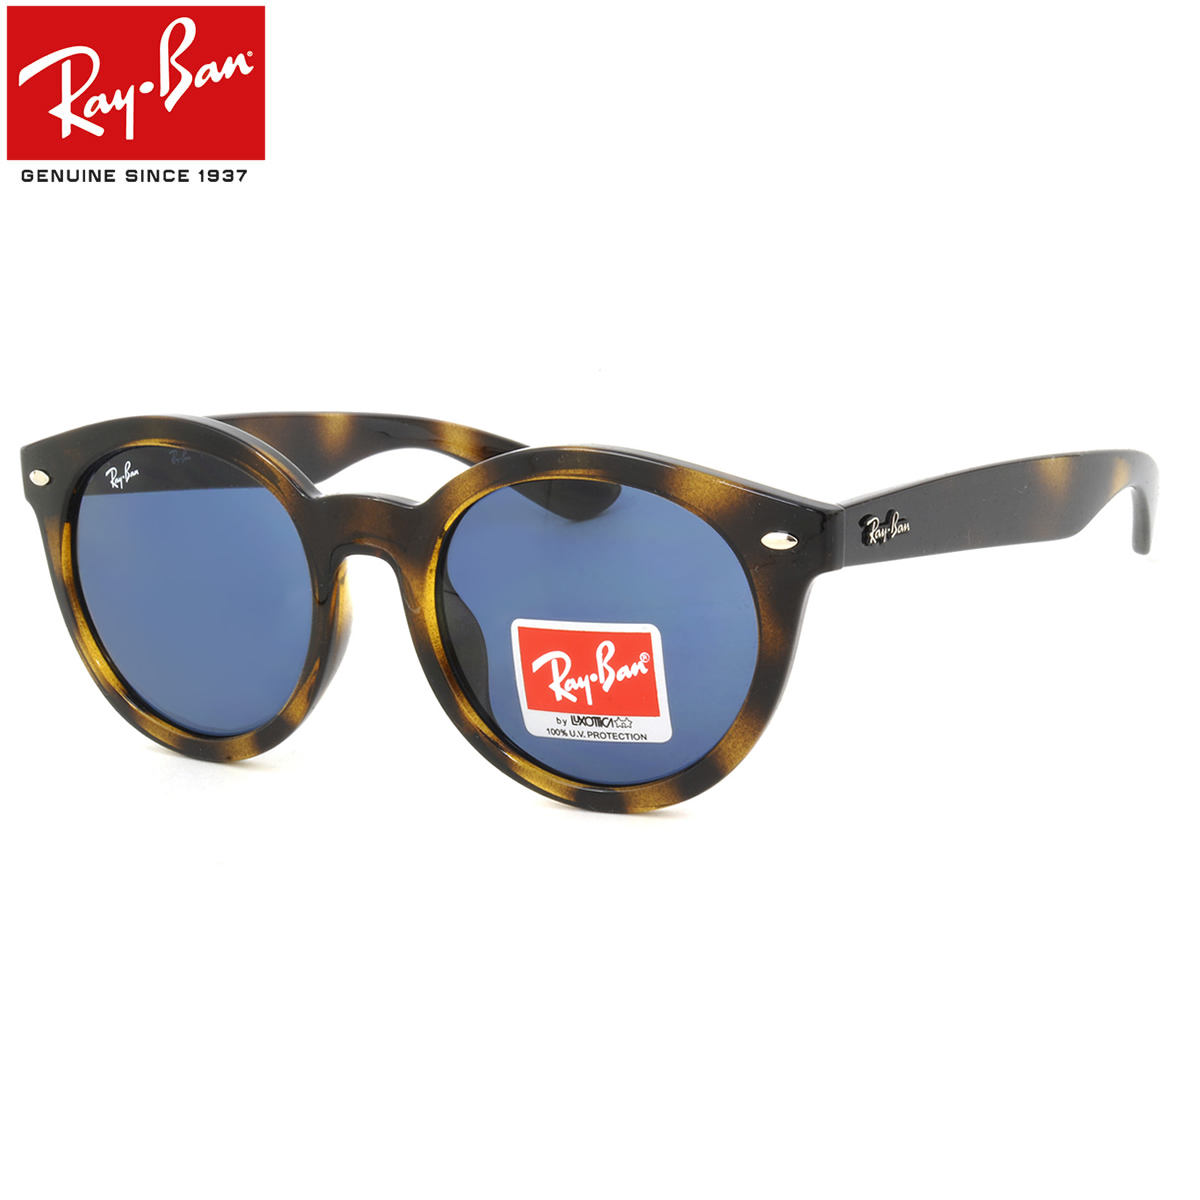 625daa405d Optical Shop Thats  Ray-Ban Sunglasses RB4261D 710 80 55size GENUINE ...